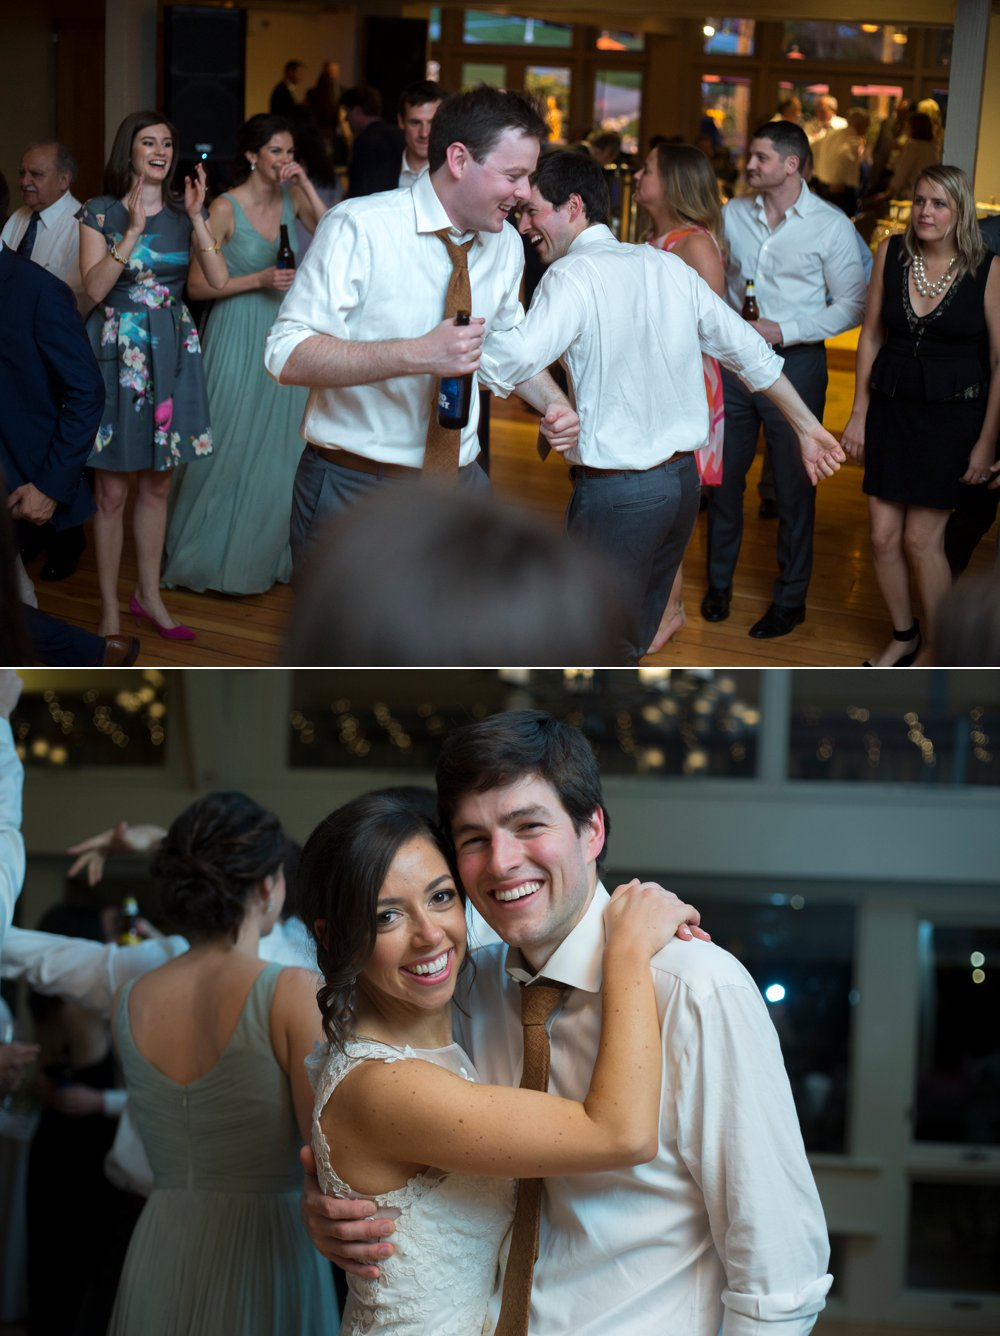 SomerbyJonesPhotography_WarrenConferenceCenterWedding_BostonCollegeWedding_0054.jpg